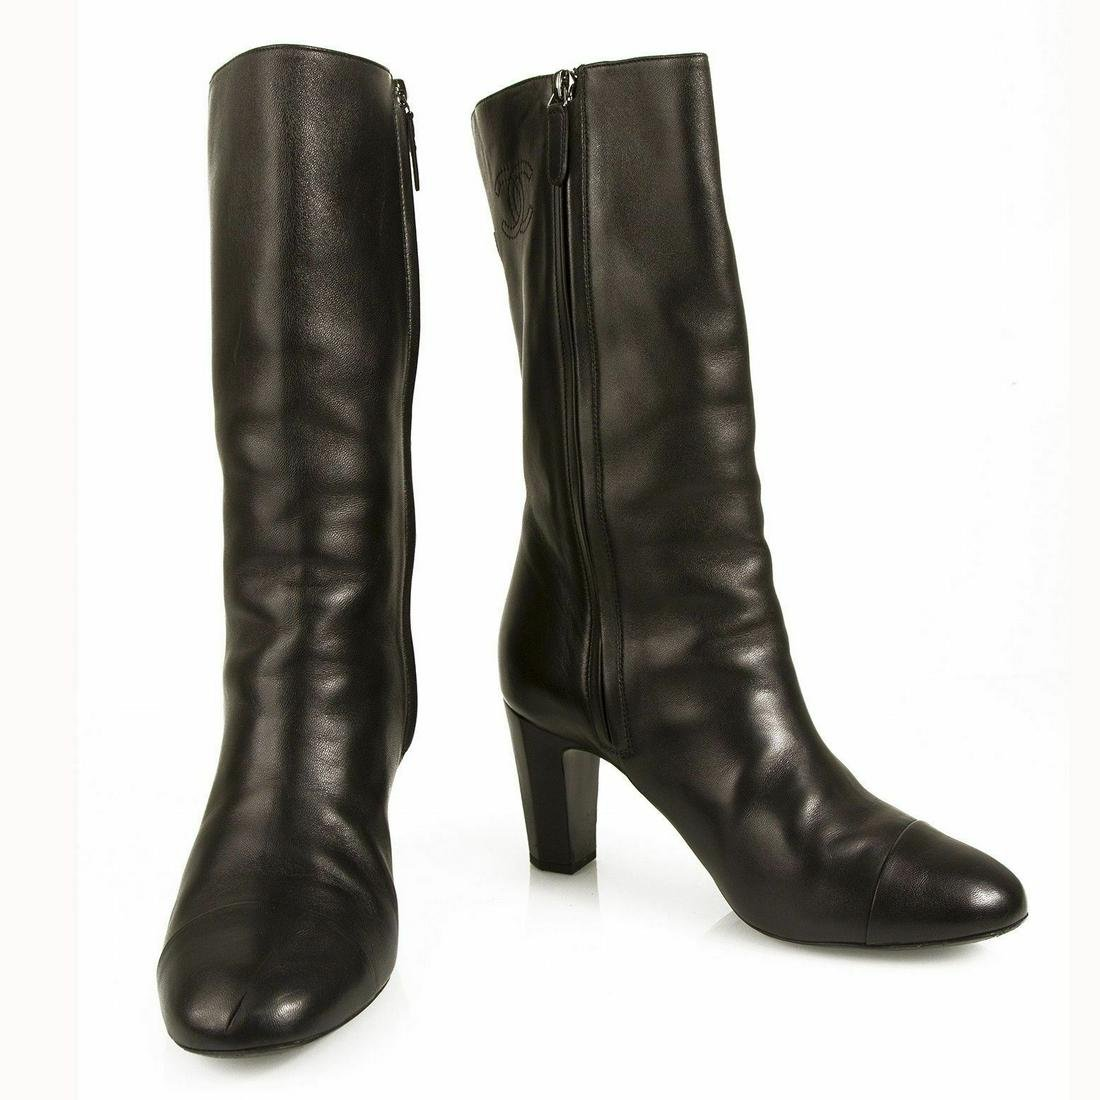 Chanel Black Leather calf height round cap toe boots